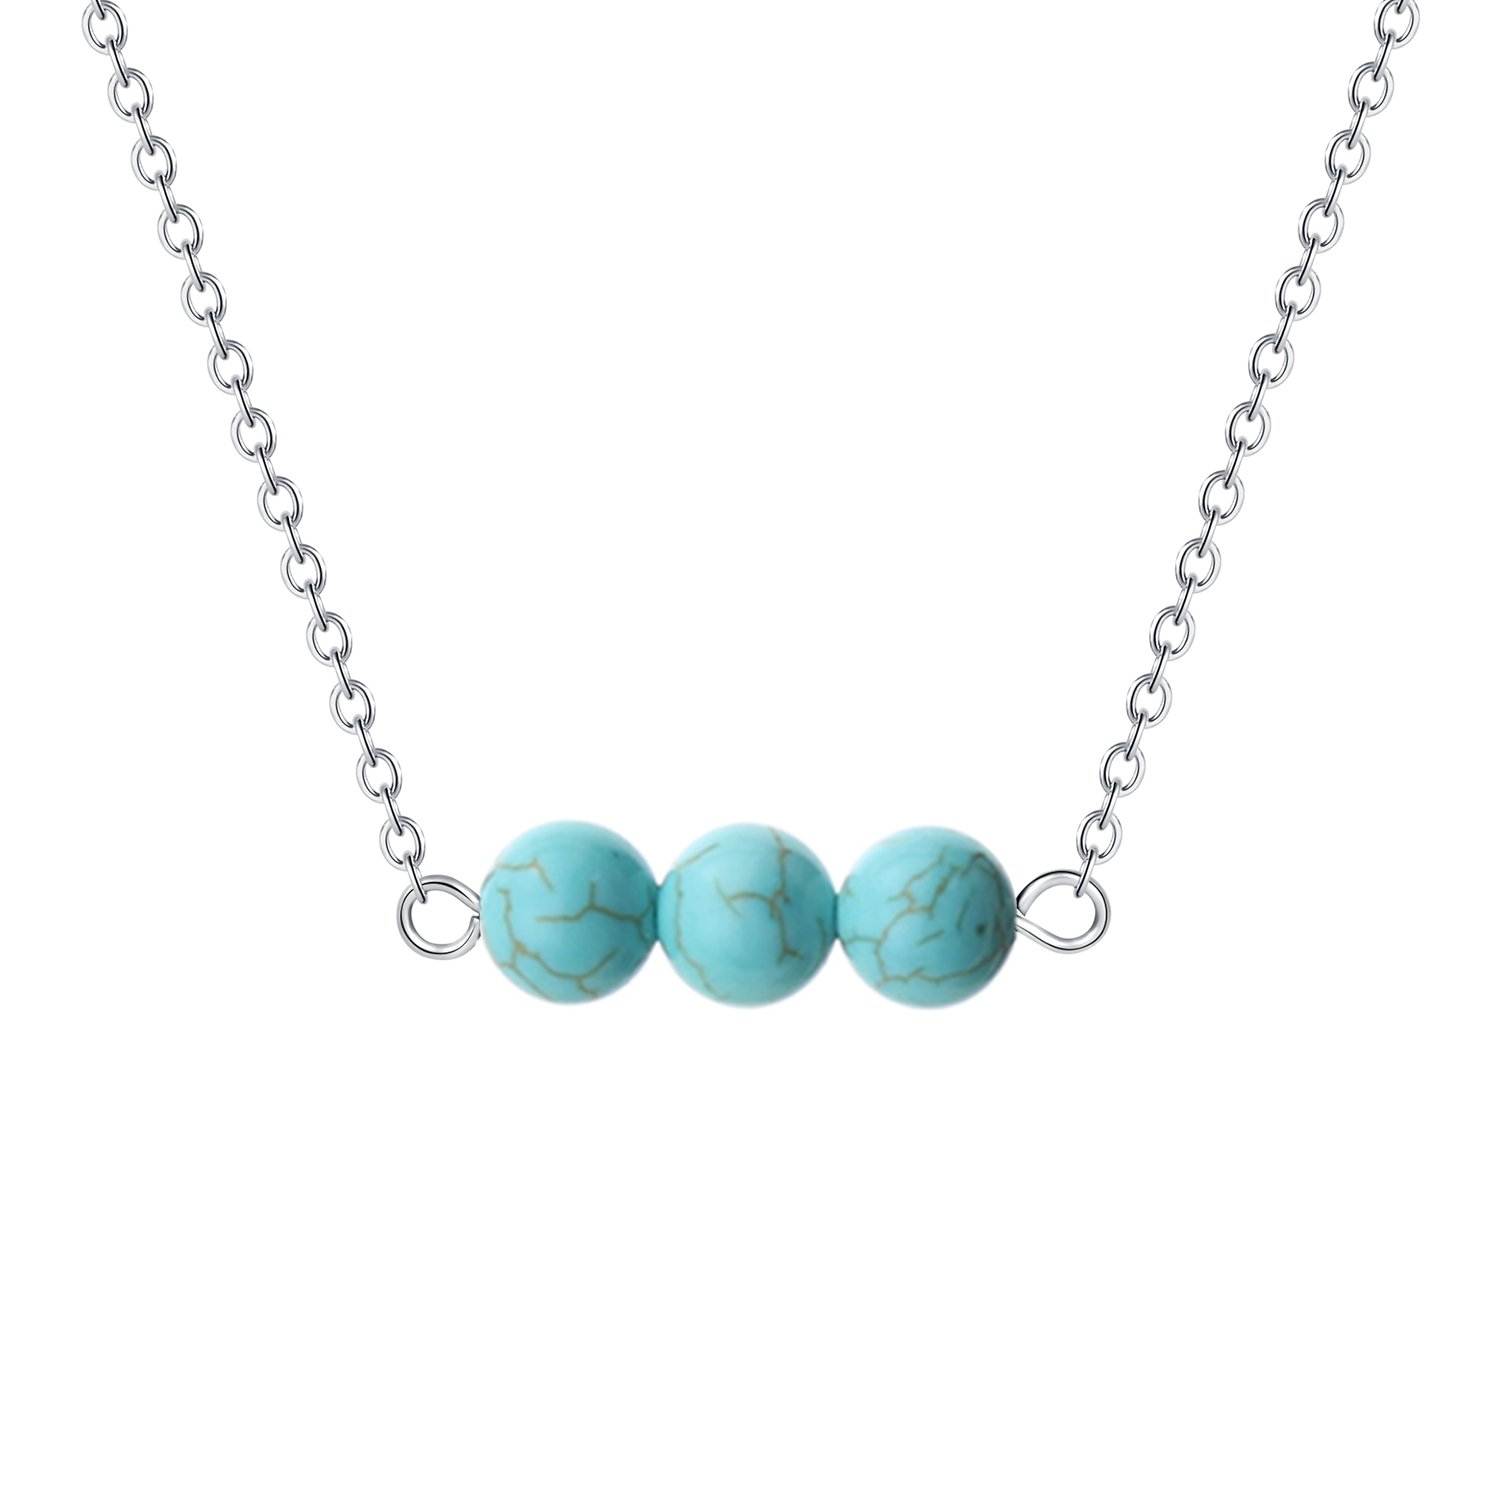 Wunionup Turquoise Bead Choker Jewelry Necklace - Handmade Minimalist Natural Dainty Tiny Simple Cute Genuine Small Round Healing Turquoise Dainty Bar Stone Gemstone Necklace Silver 16 inch Women